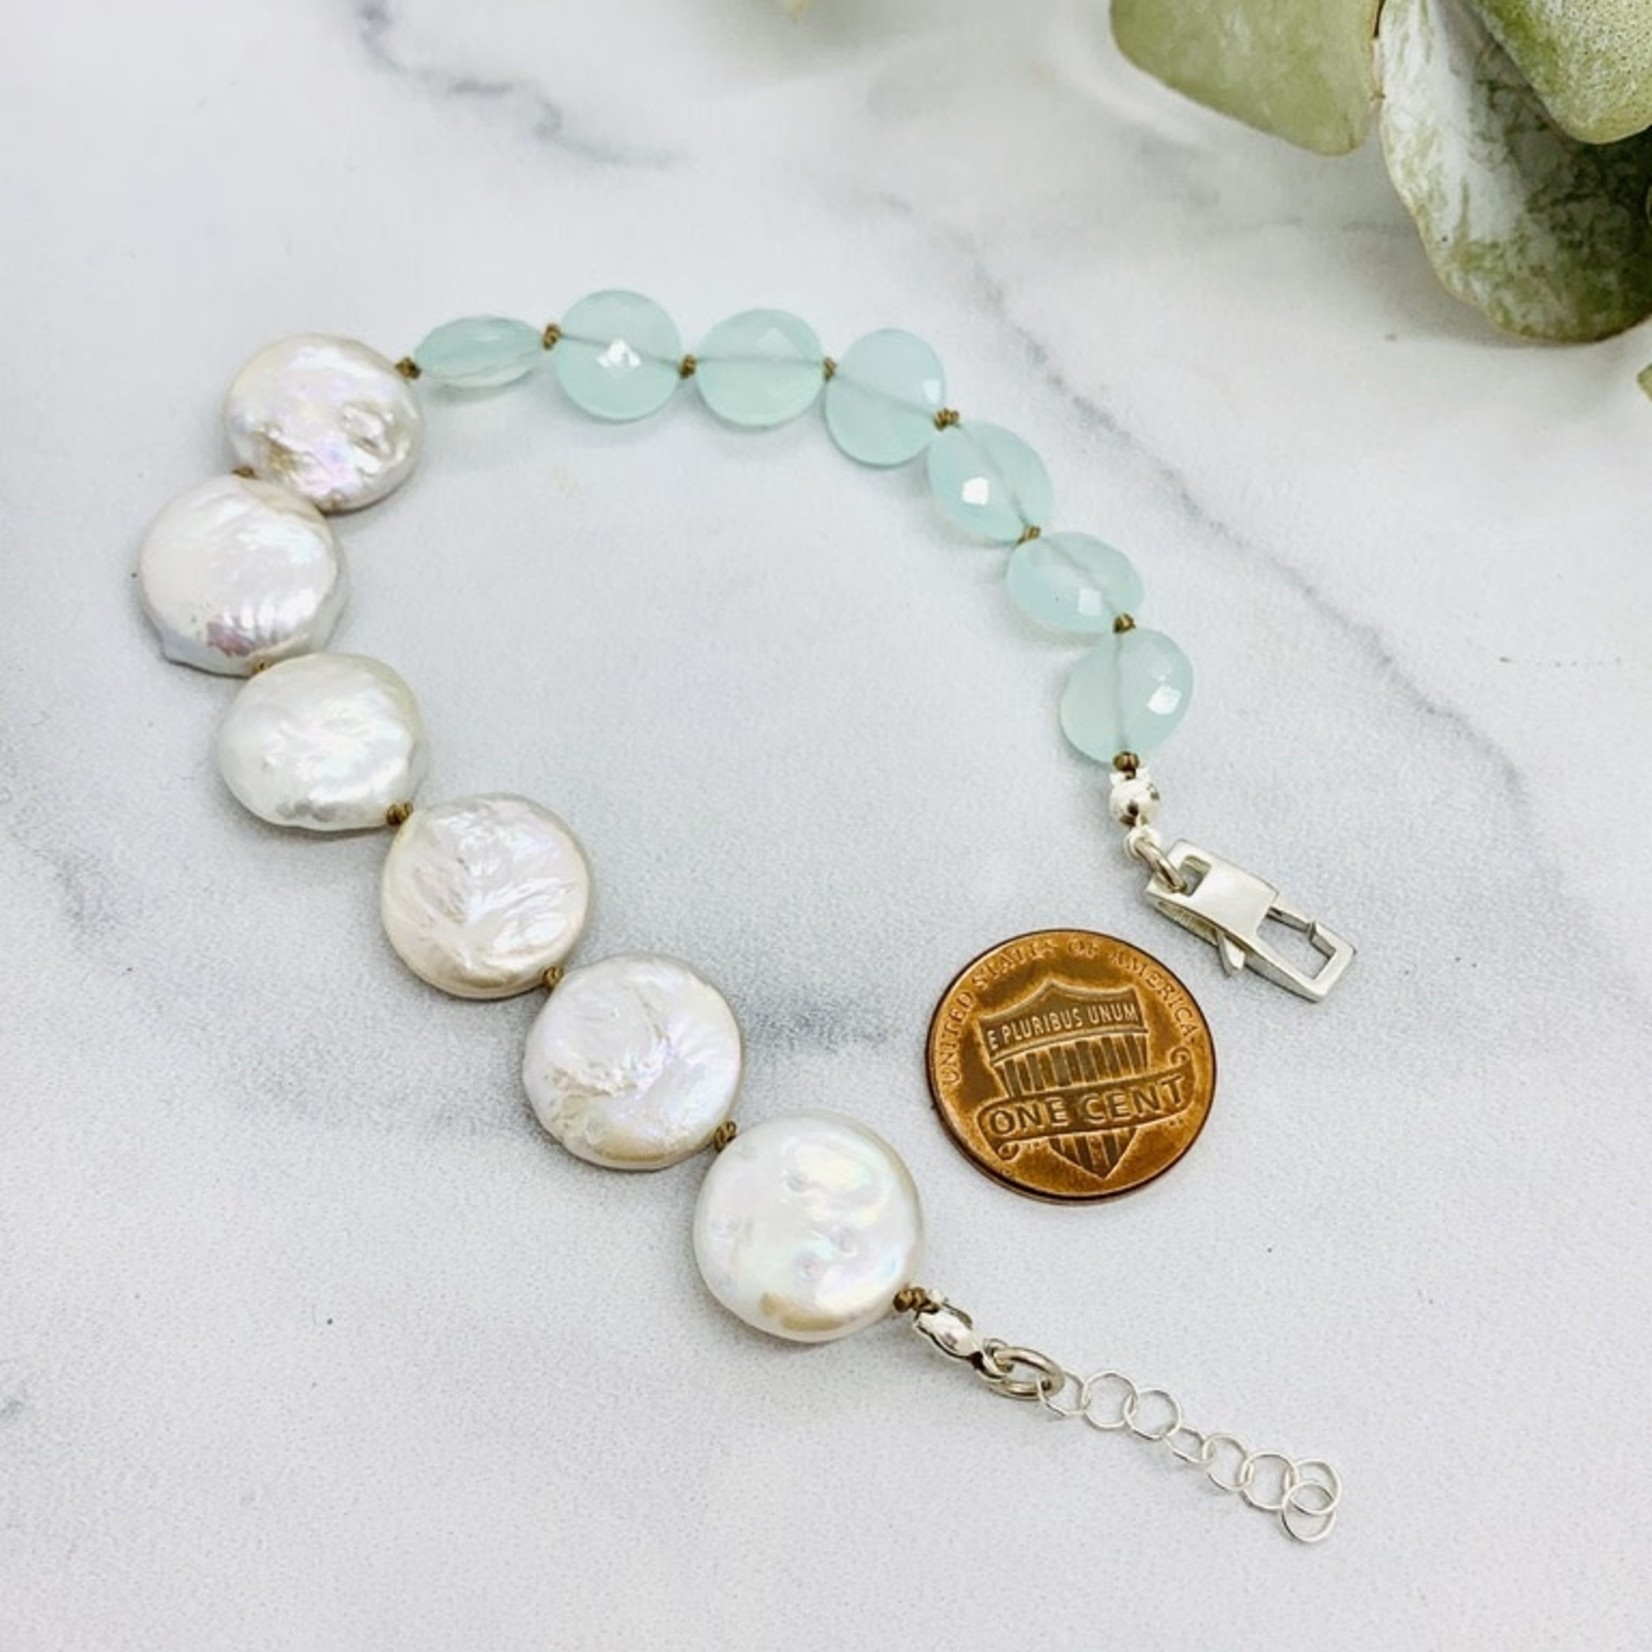 Handmade bracelet with 6 white coin pearls, 7 peruvian chalcedony coins knotted on natural silk